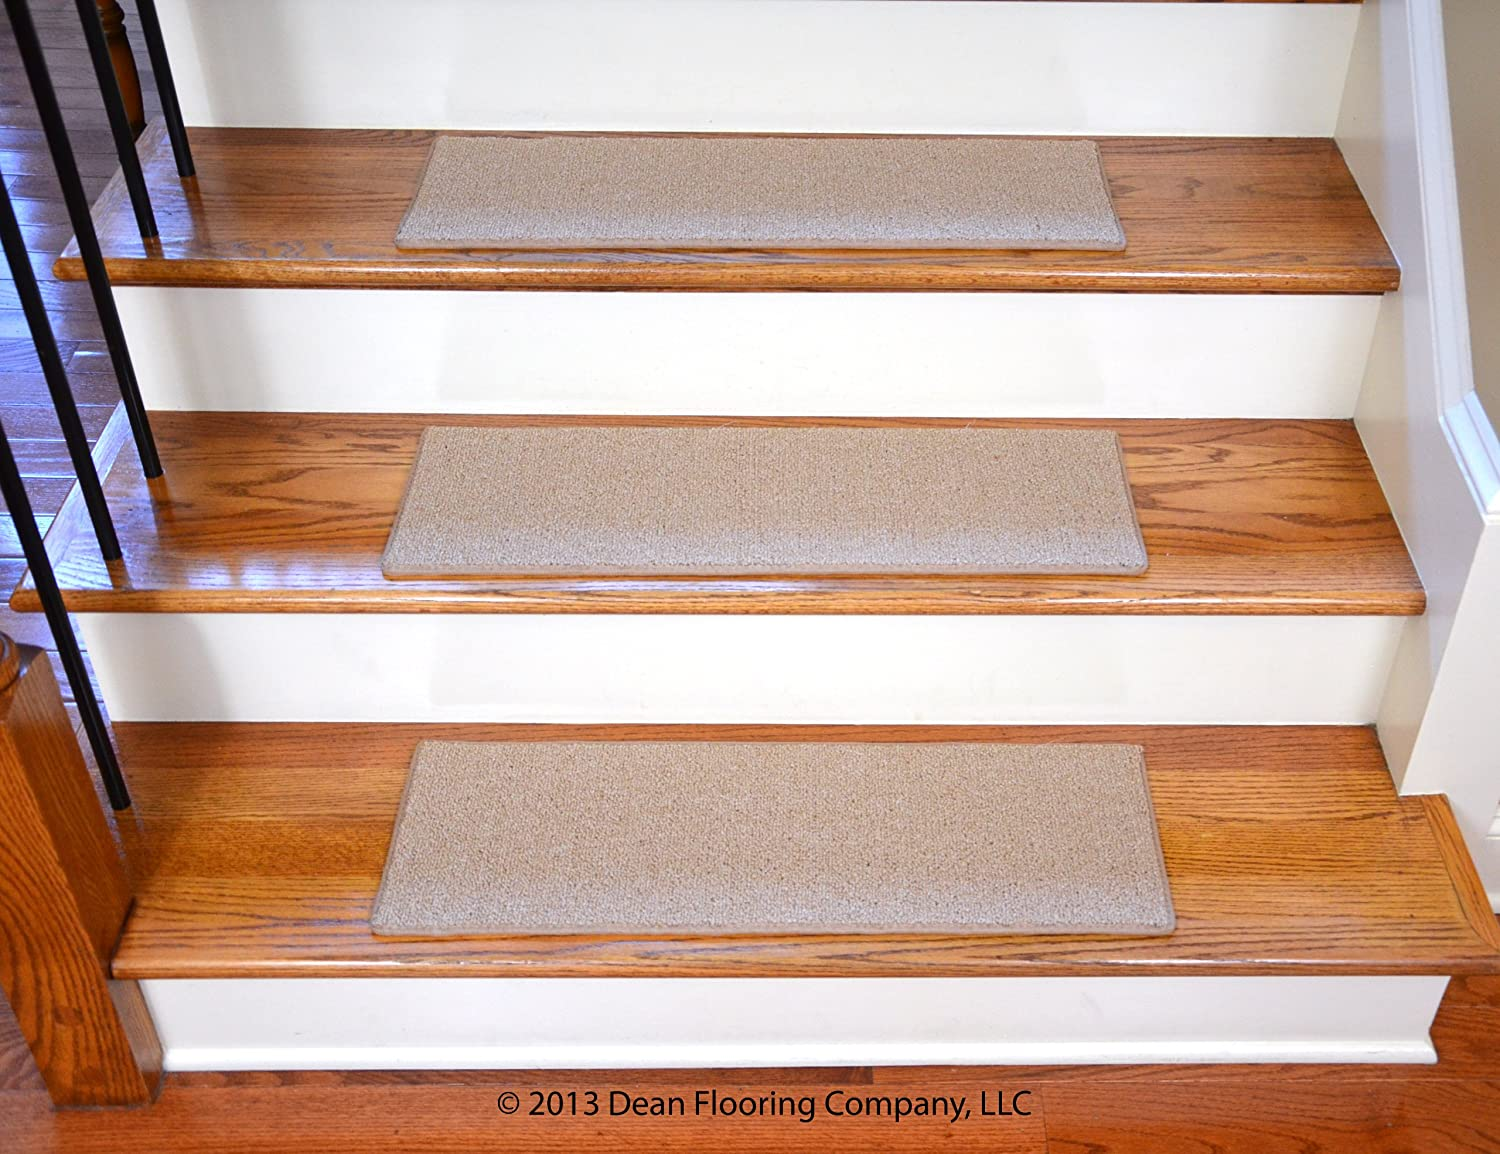 Dean NonSlip Tape Free Pet Friendly DIY Carpet Stair TreadsRugs